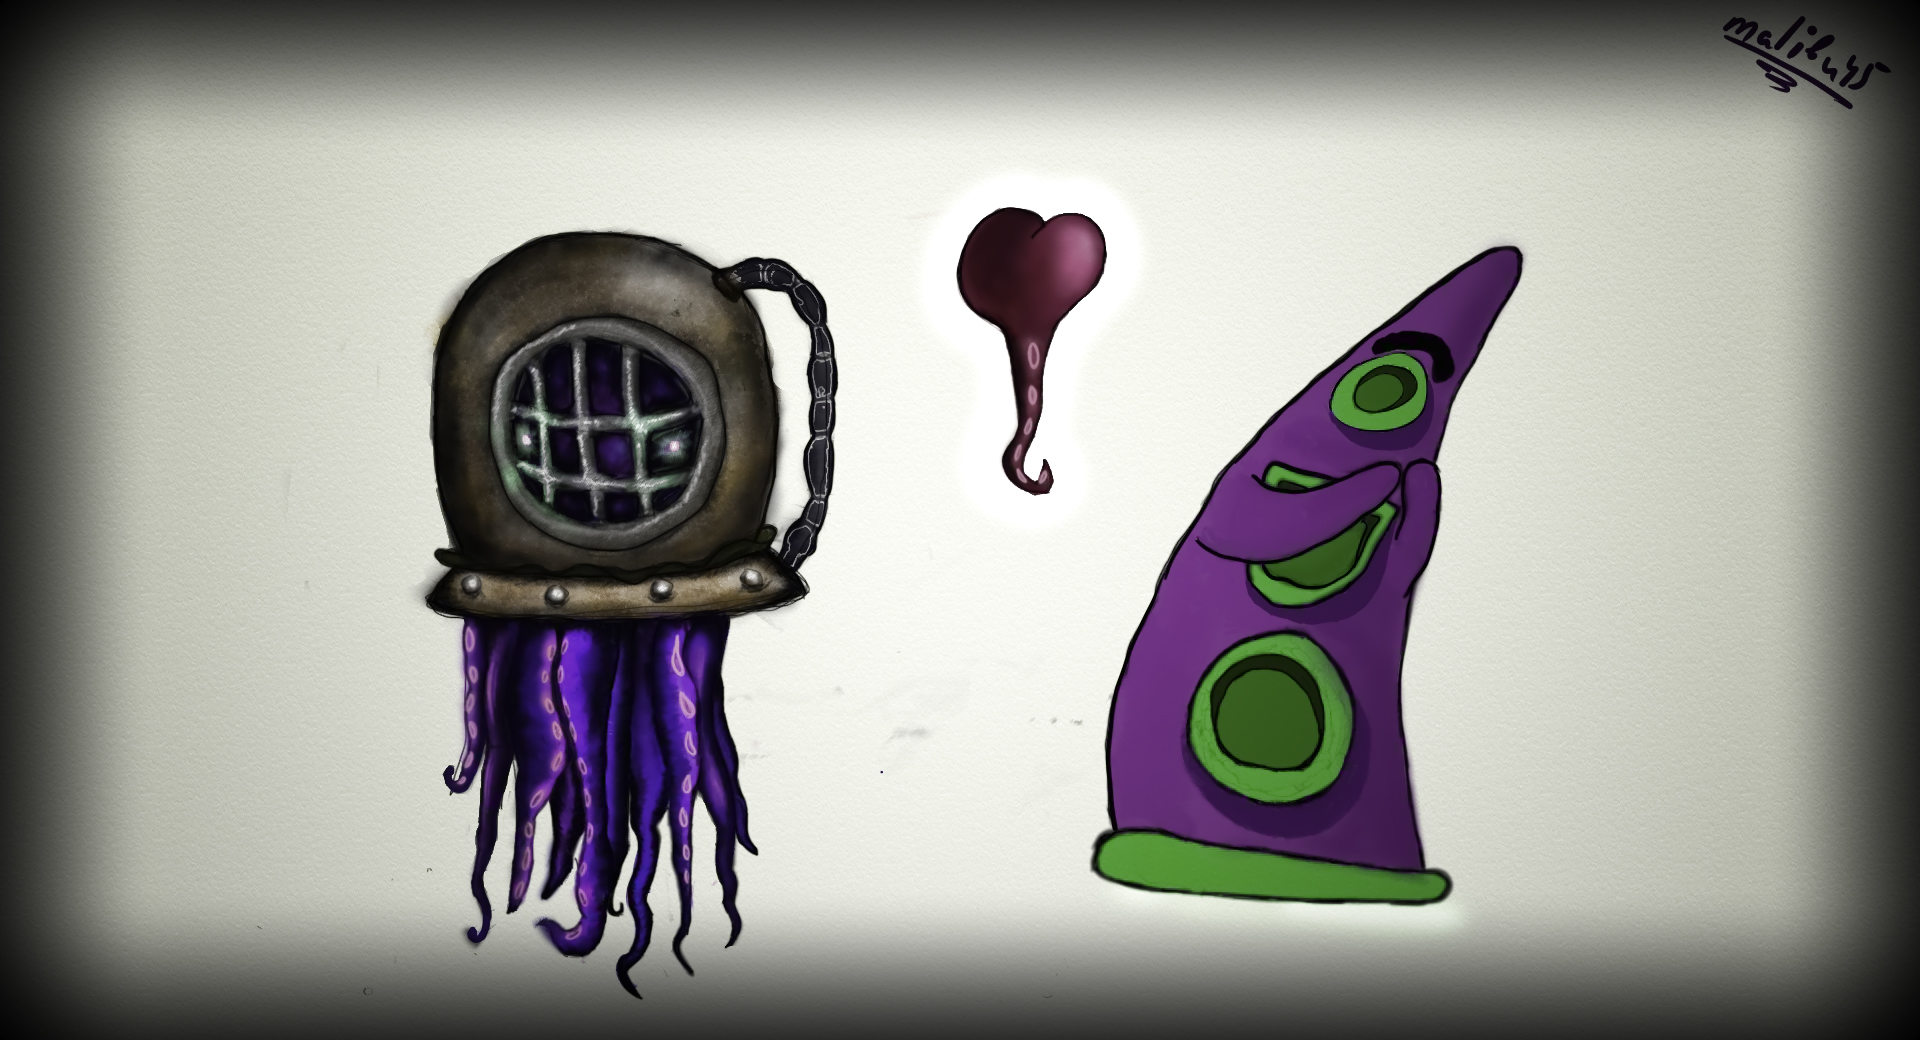 Love of the tentacle